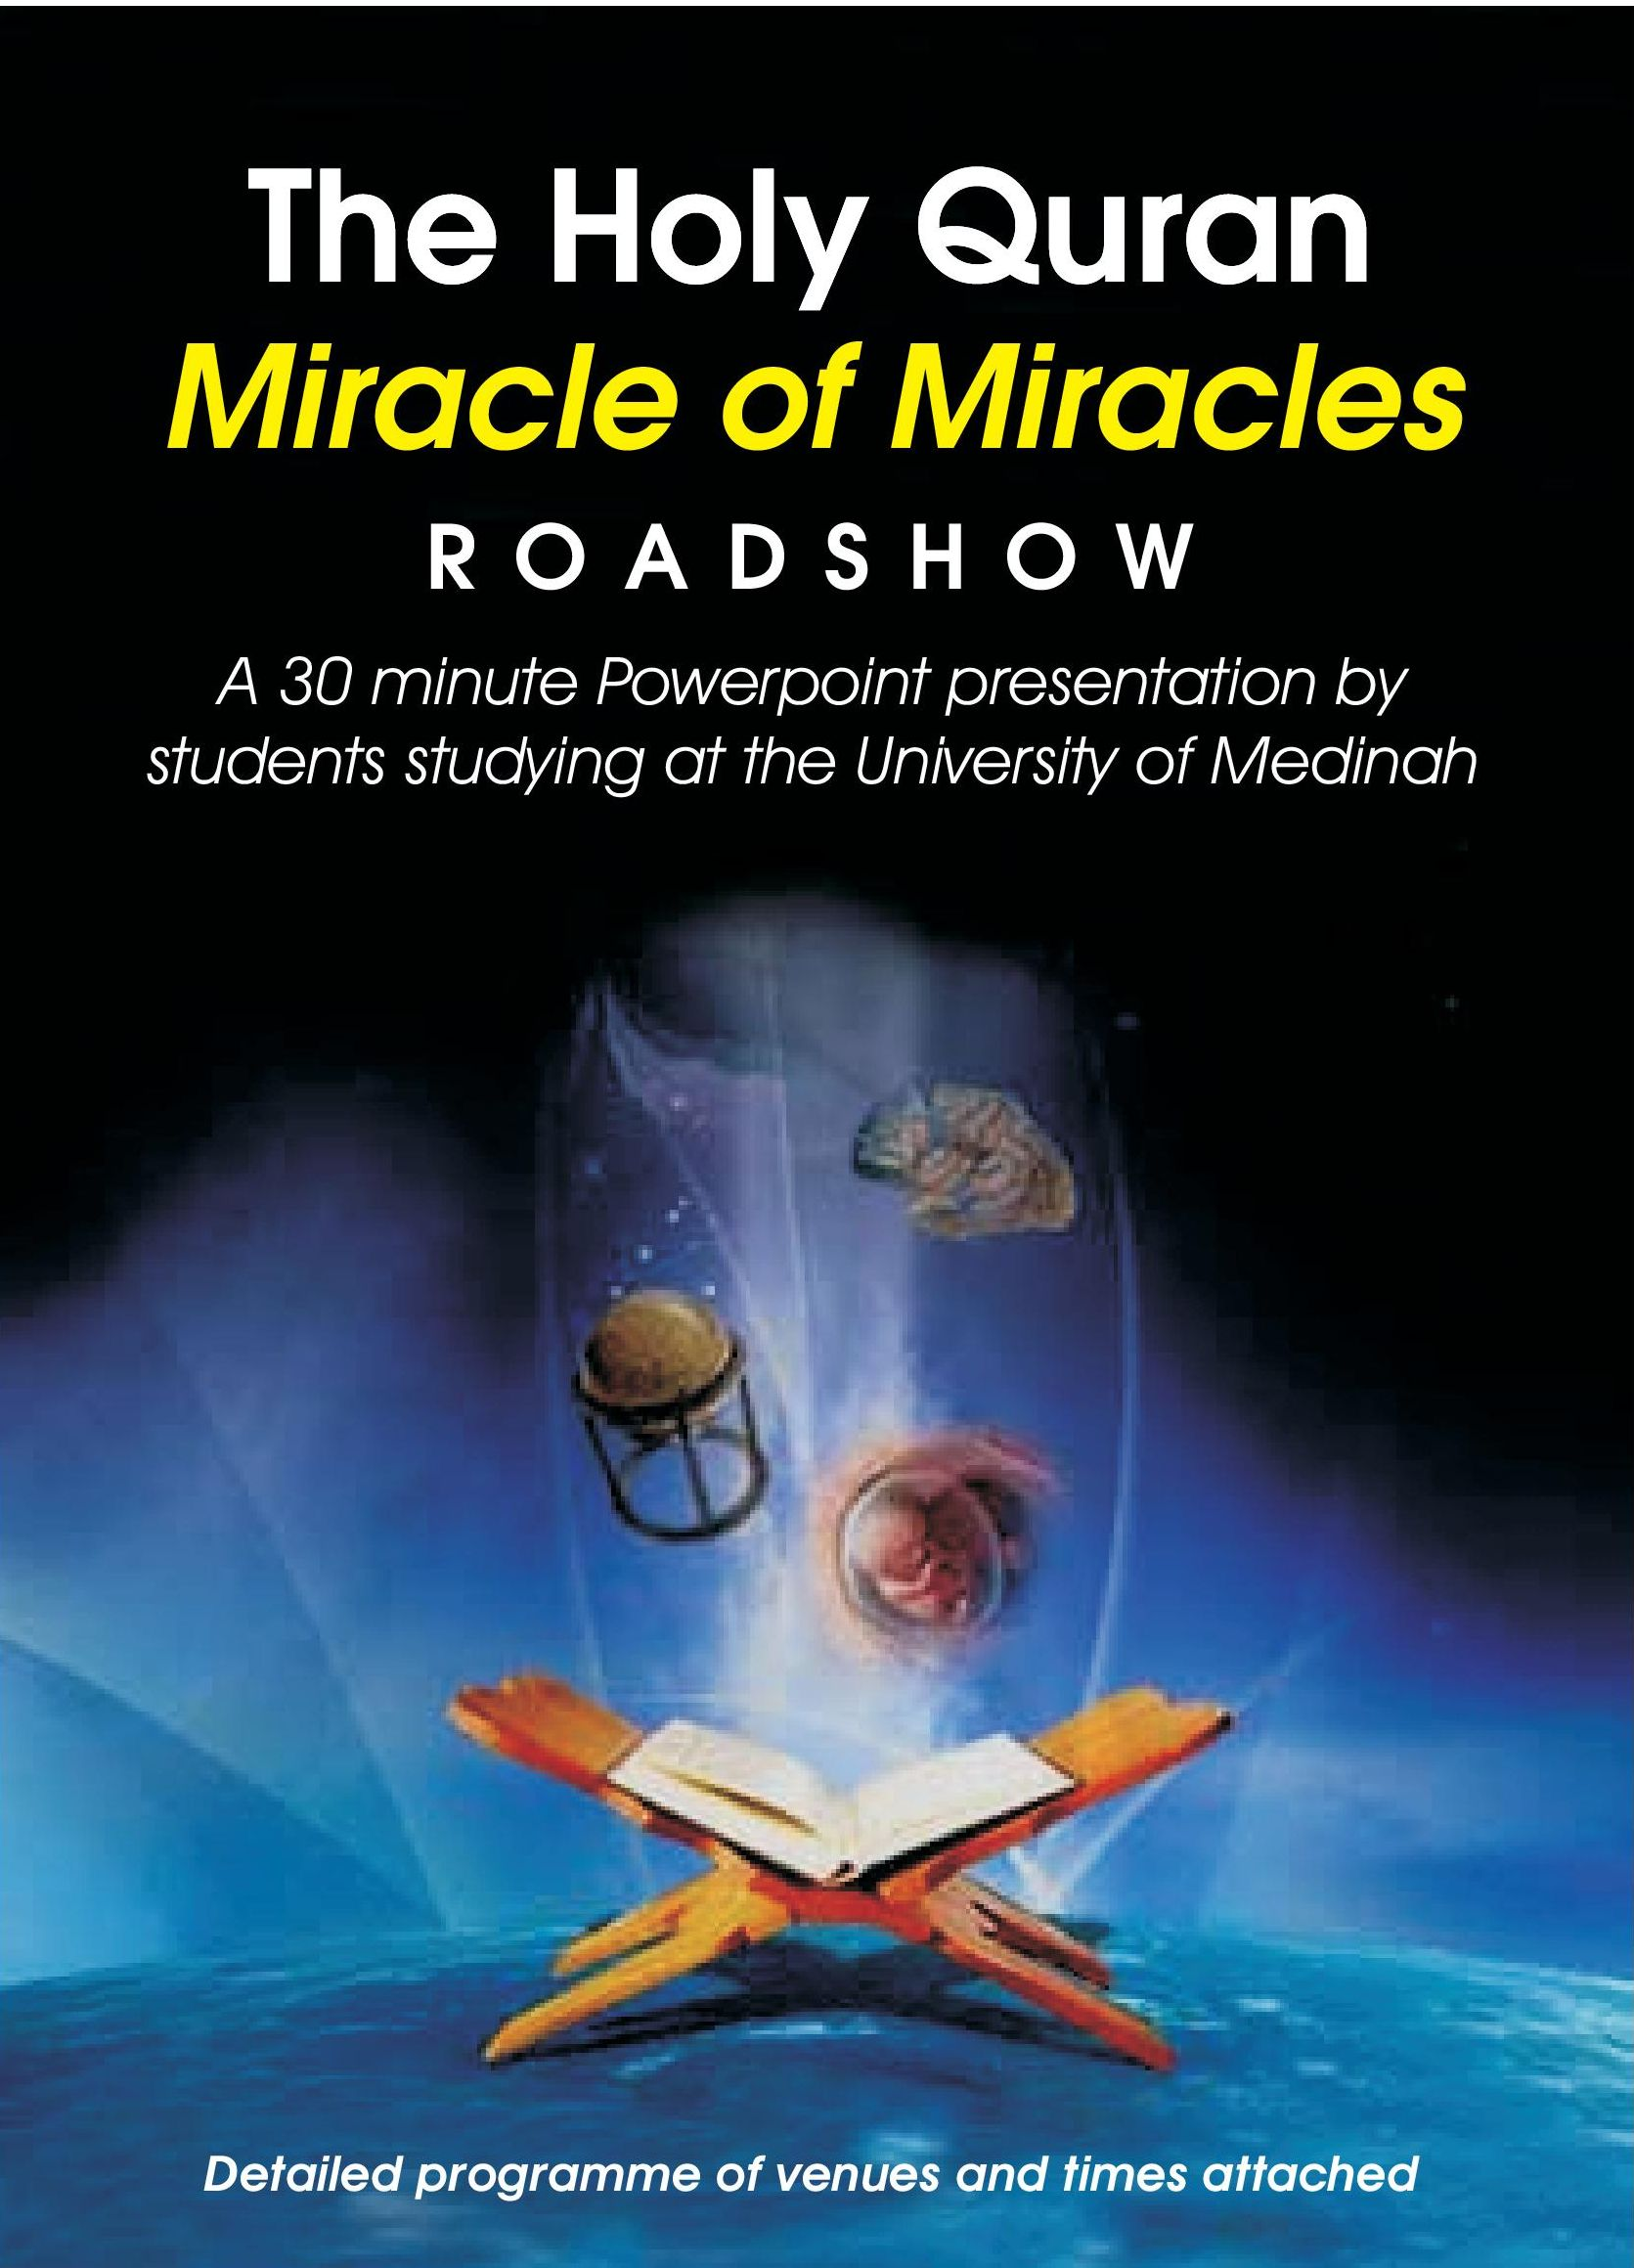 The Holy Quran, Miracle of Miracles – Roadshow